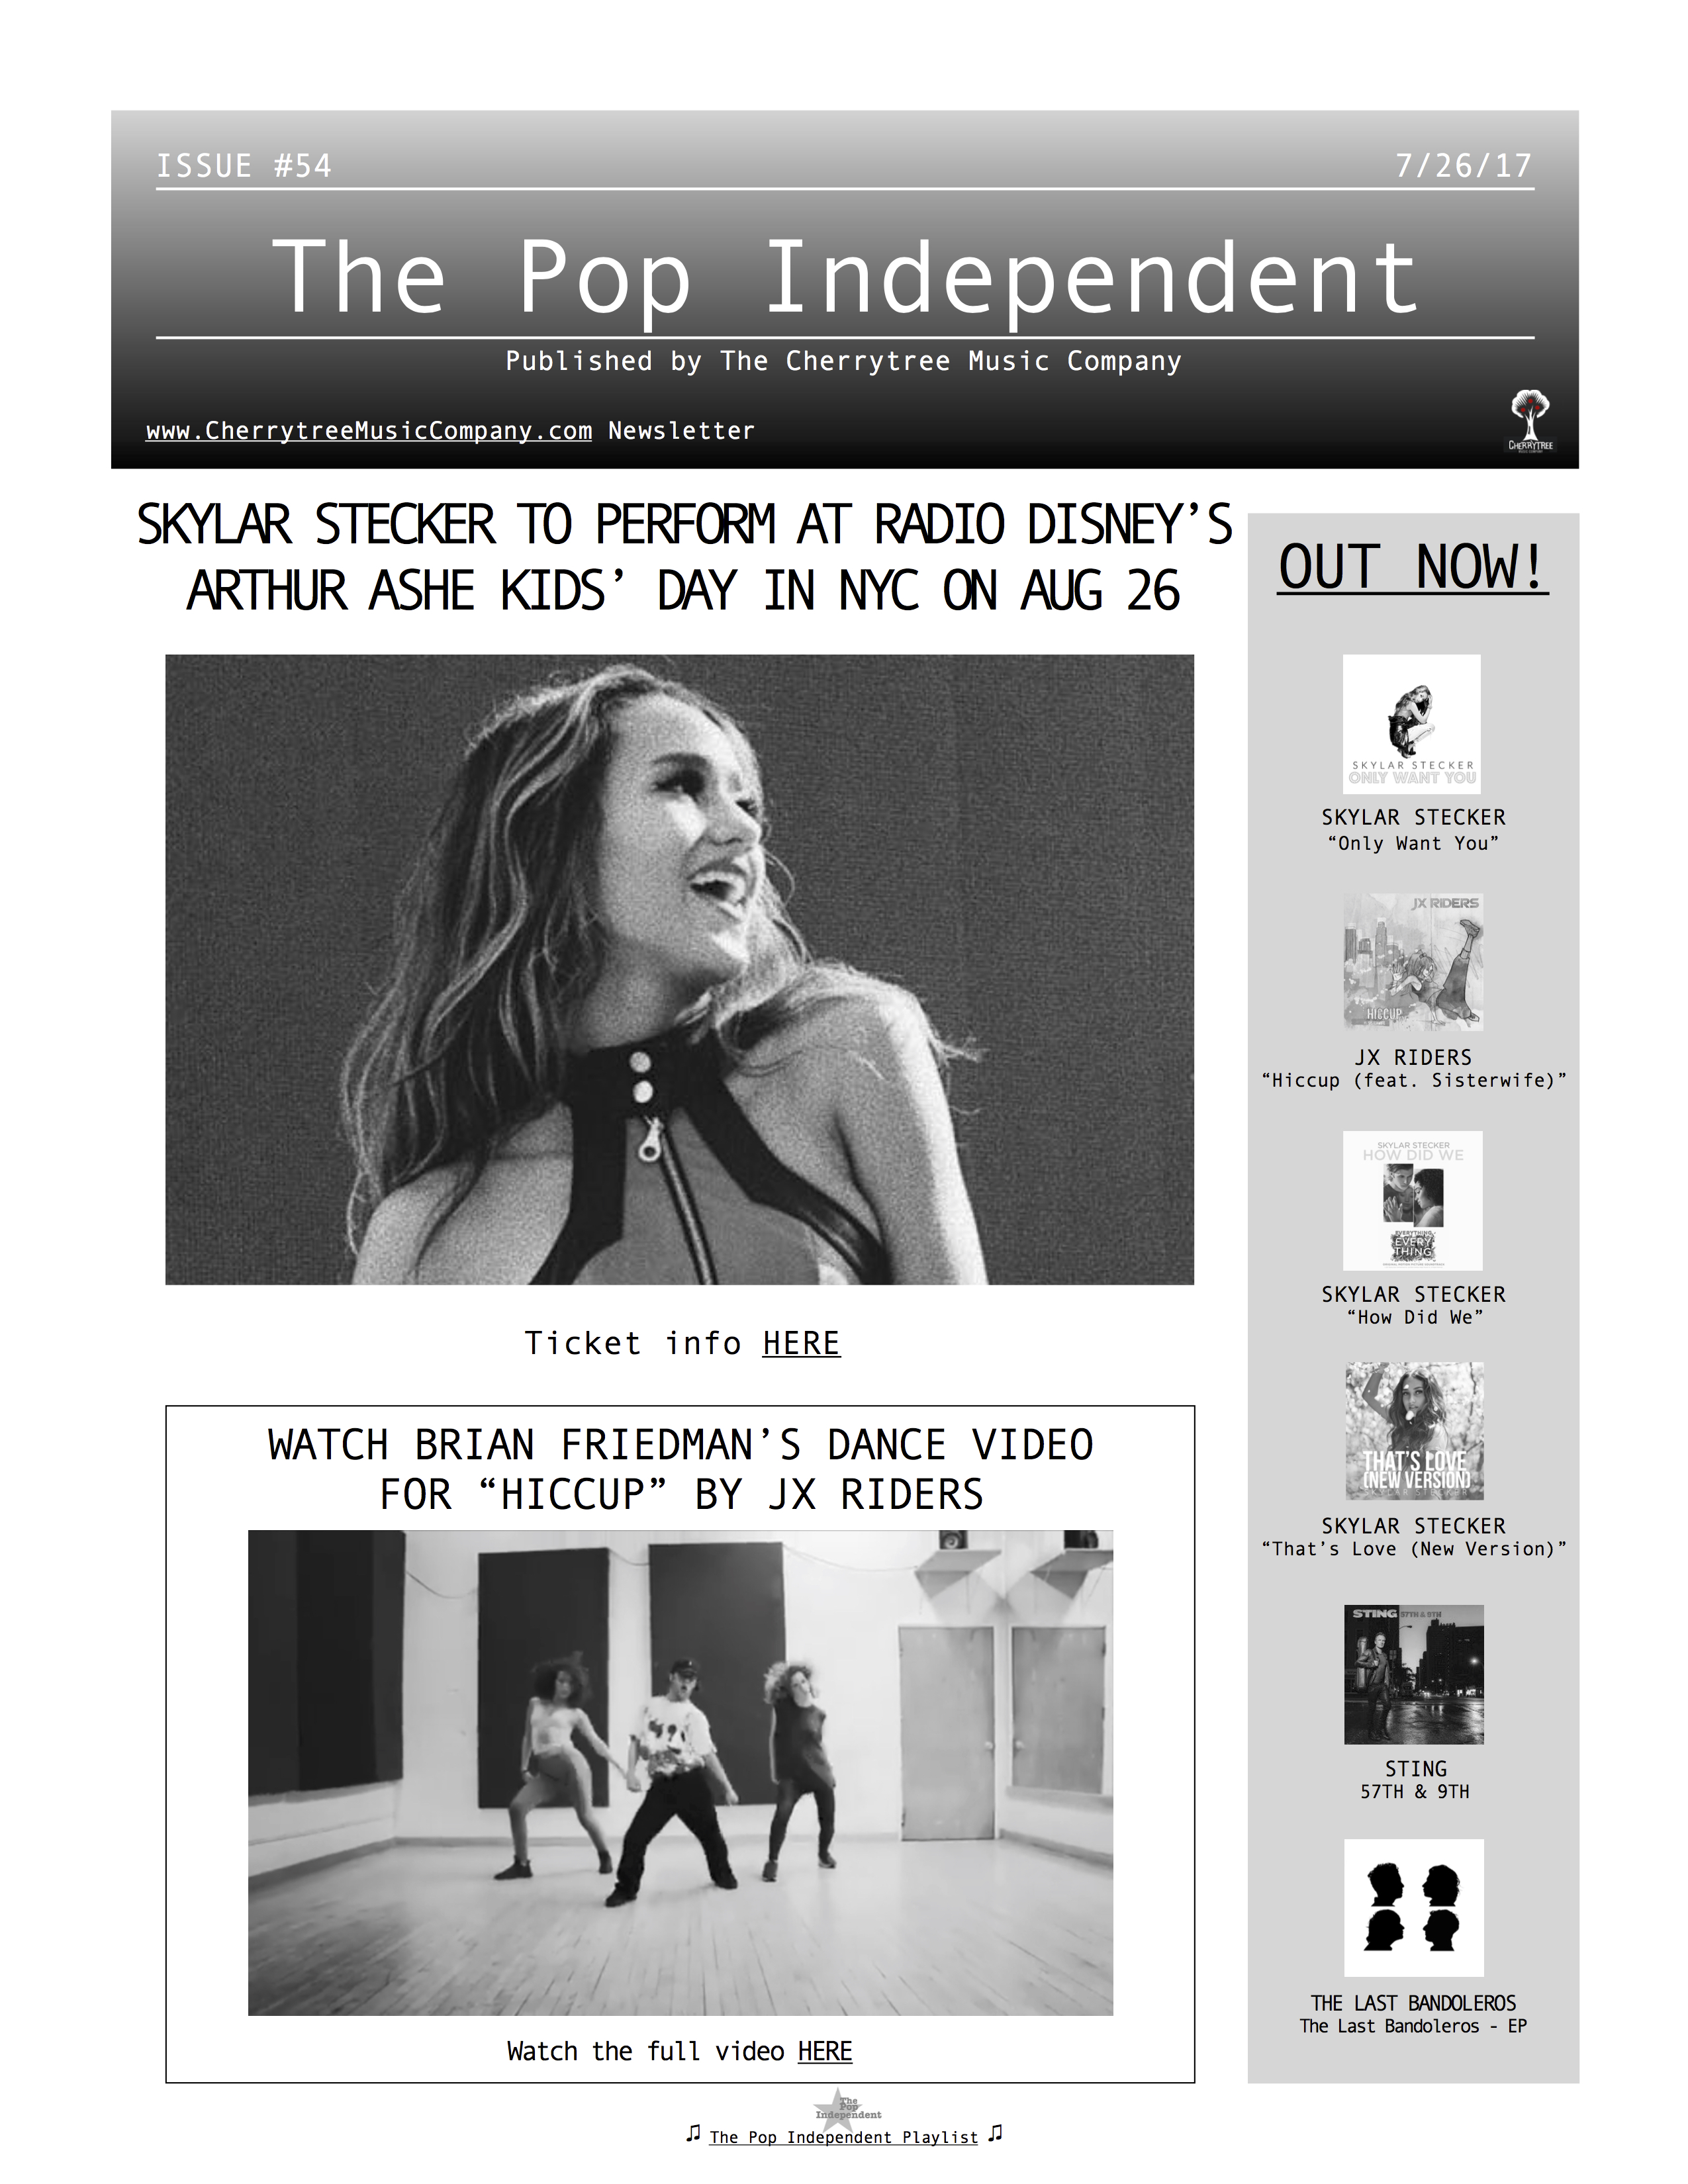 The Pop Independent, issue 54